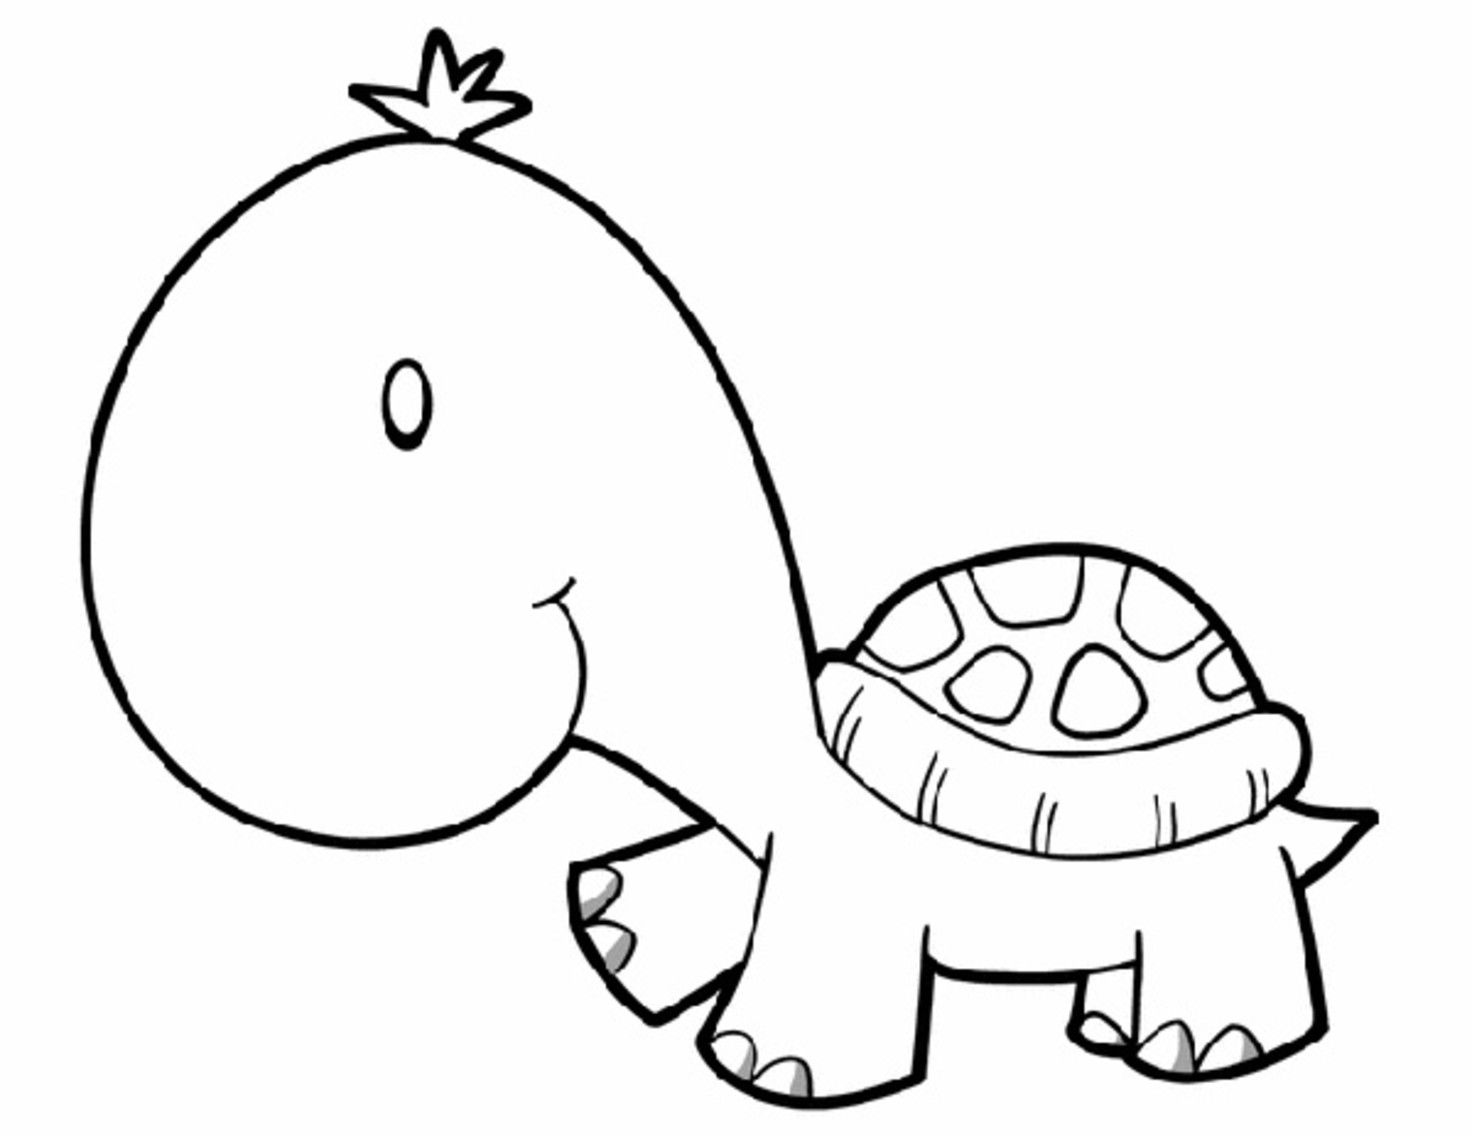 Animal coloring pages for kids | Turtle, Simple embroidery and ...